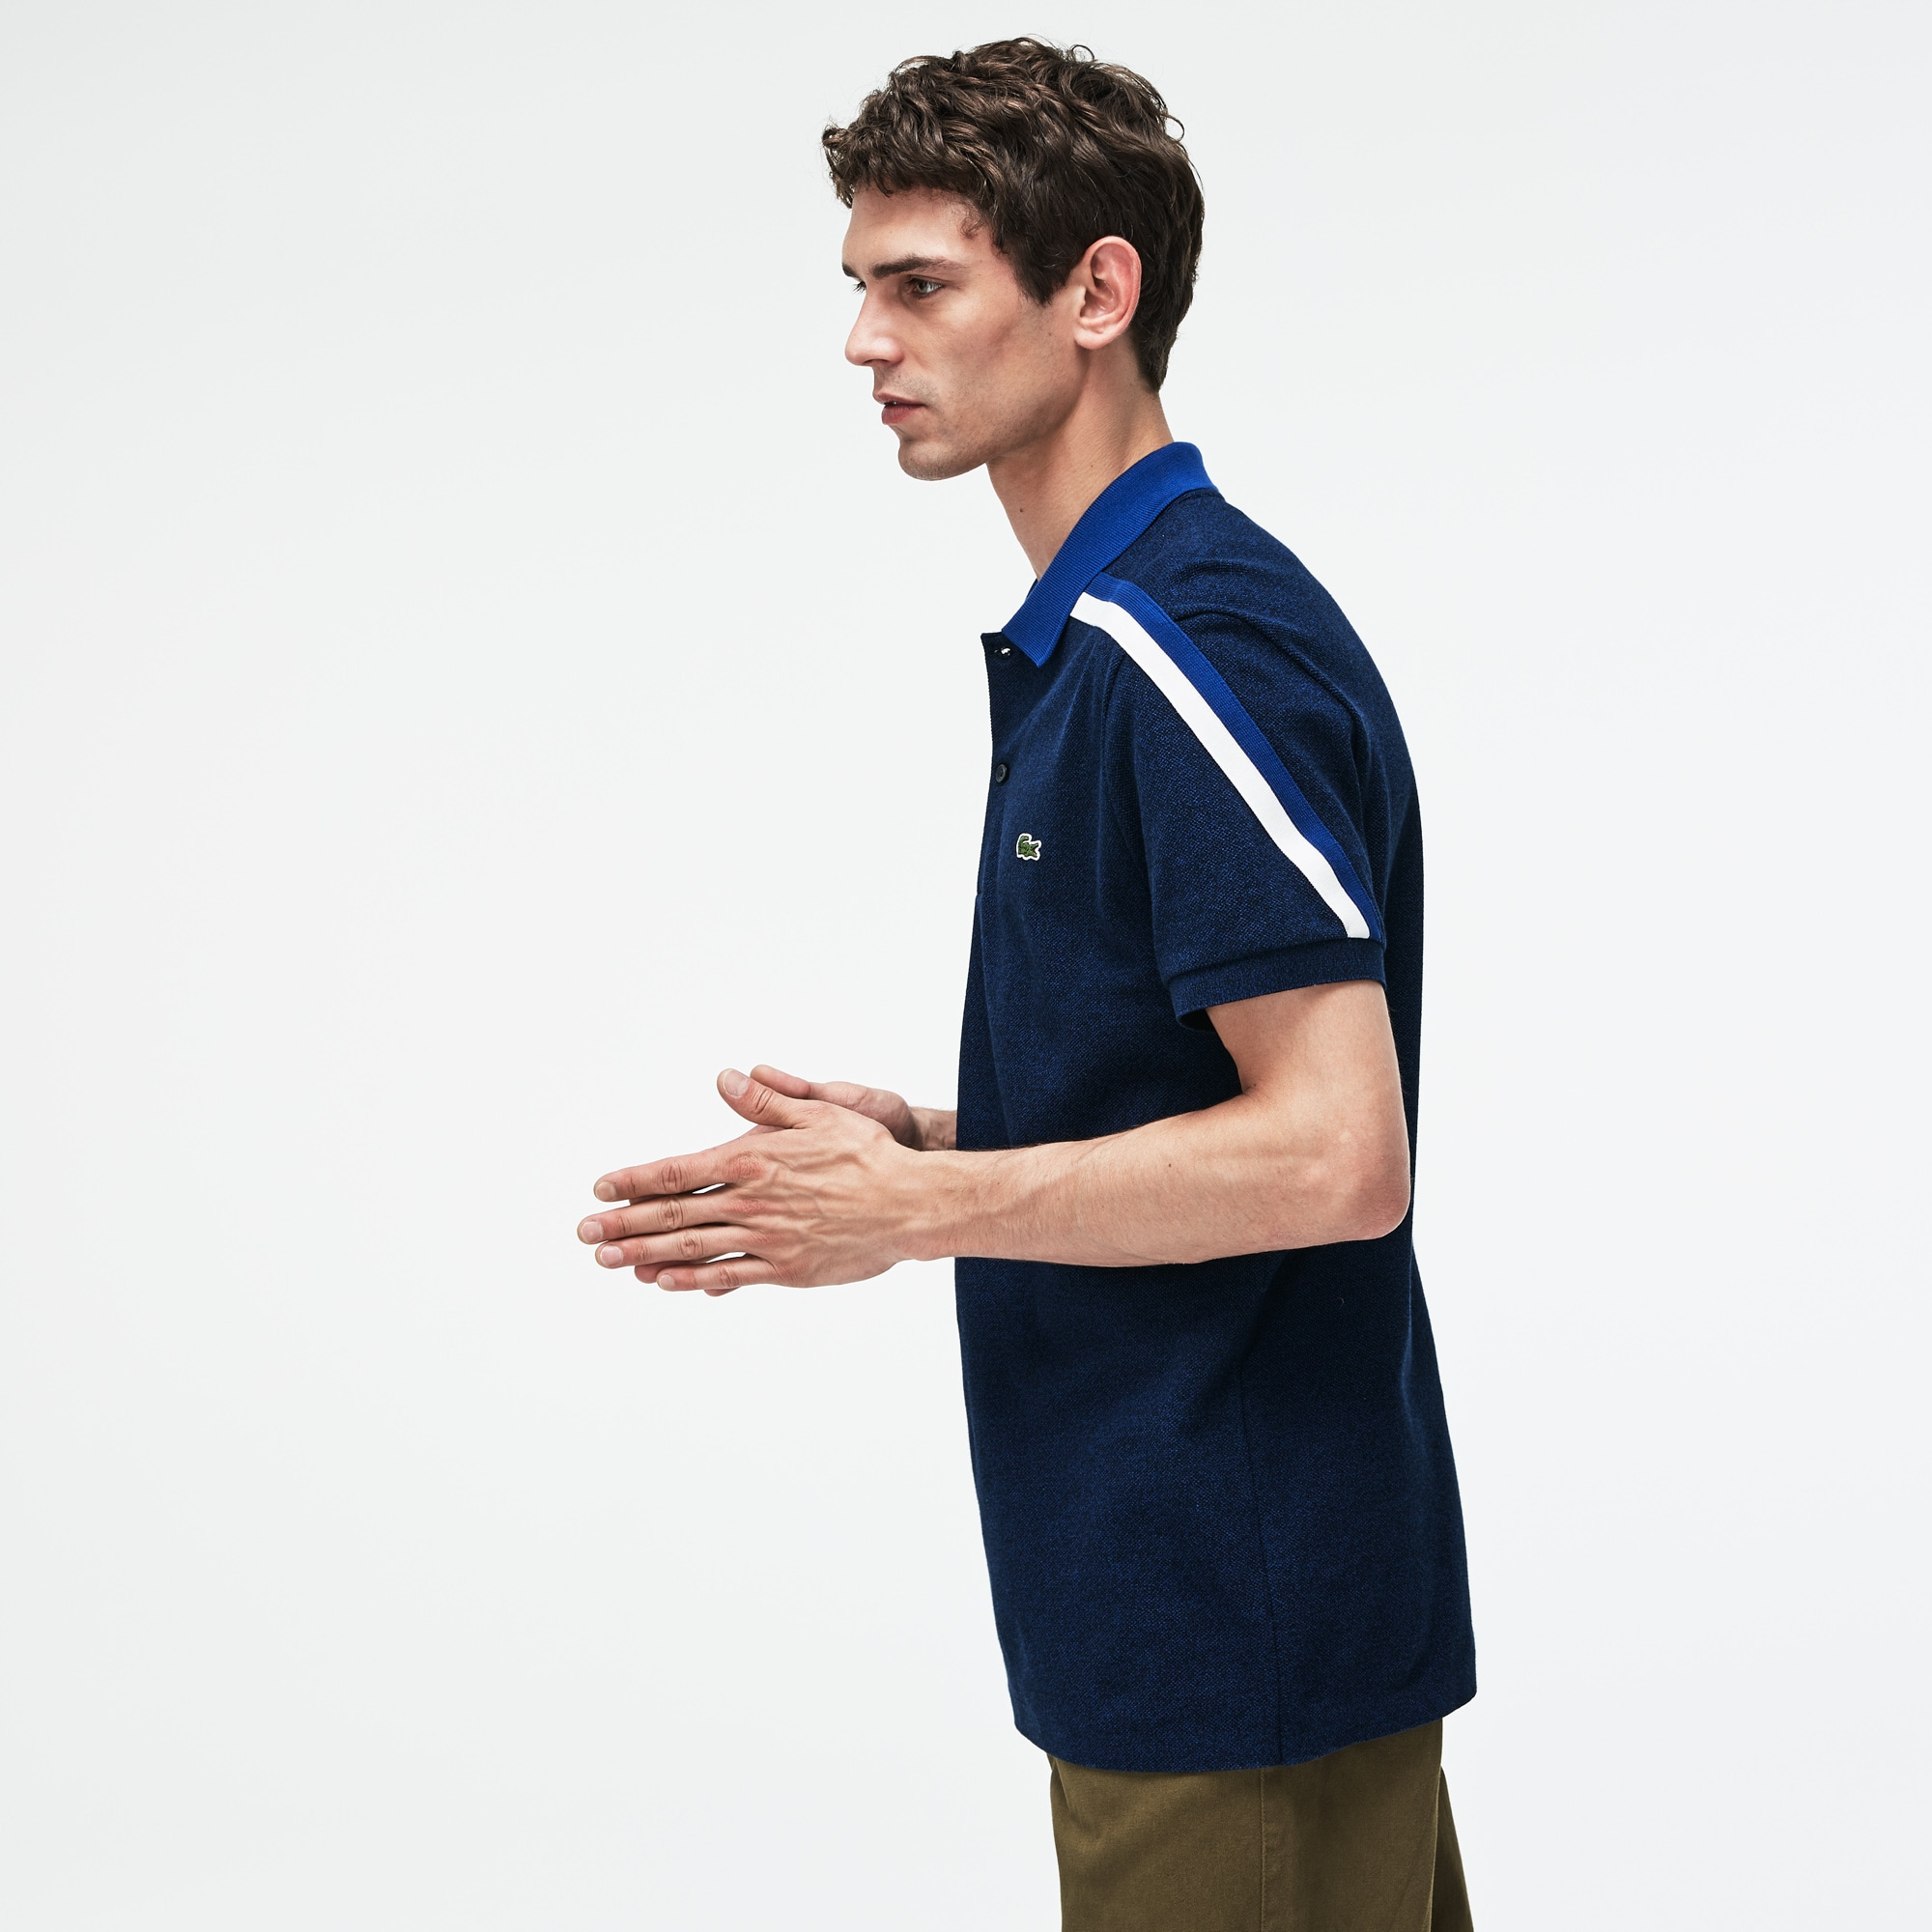 Lacoste - Polo De Hombre Lacoste Made In France Regular Fit En Piqué De Algodón - 2